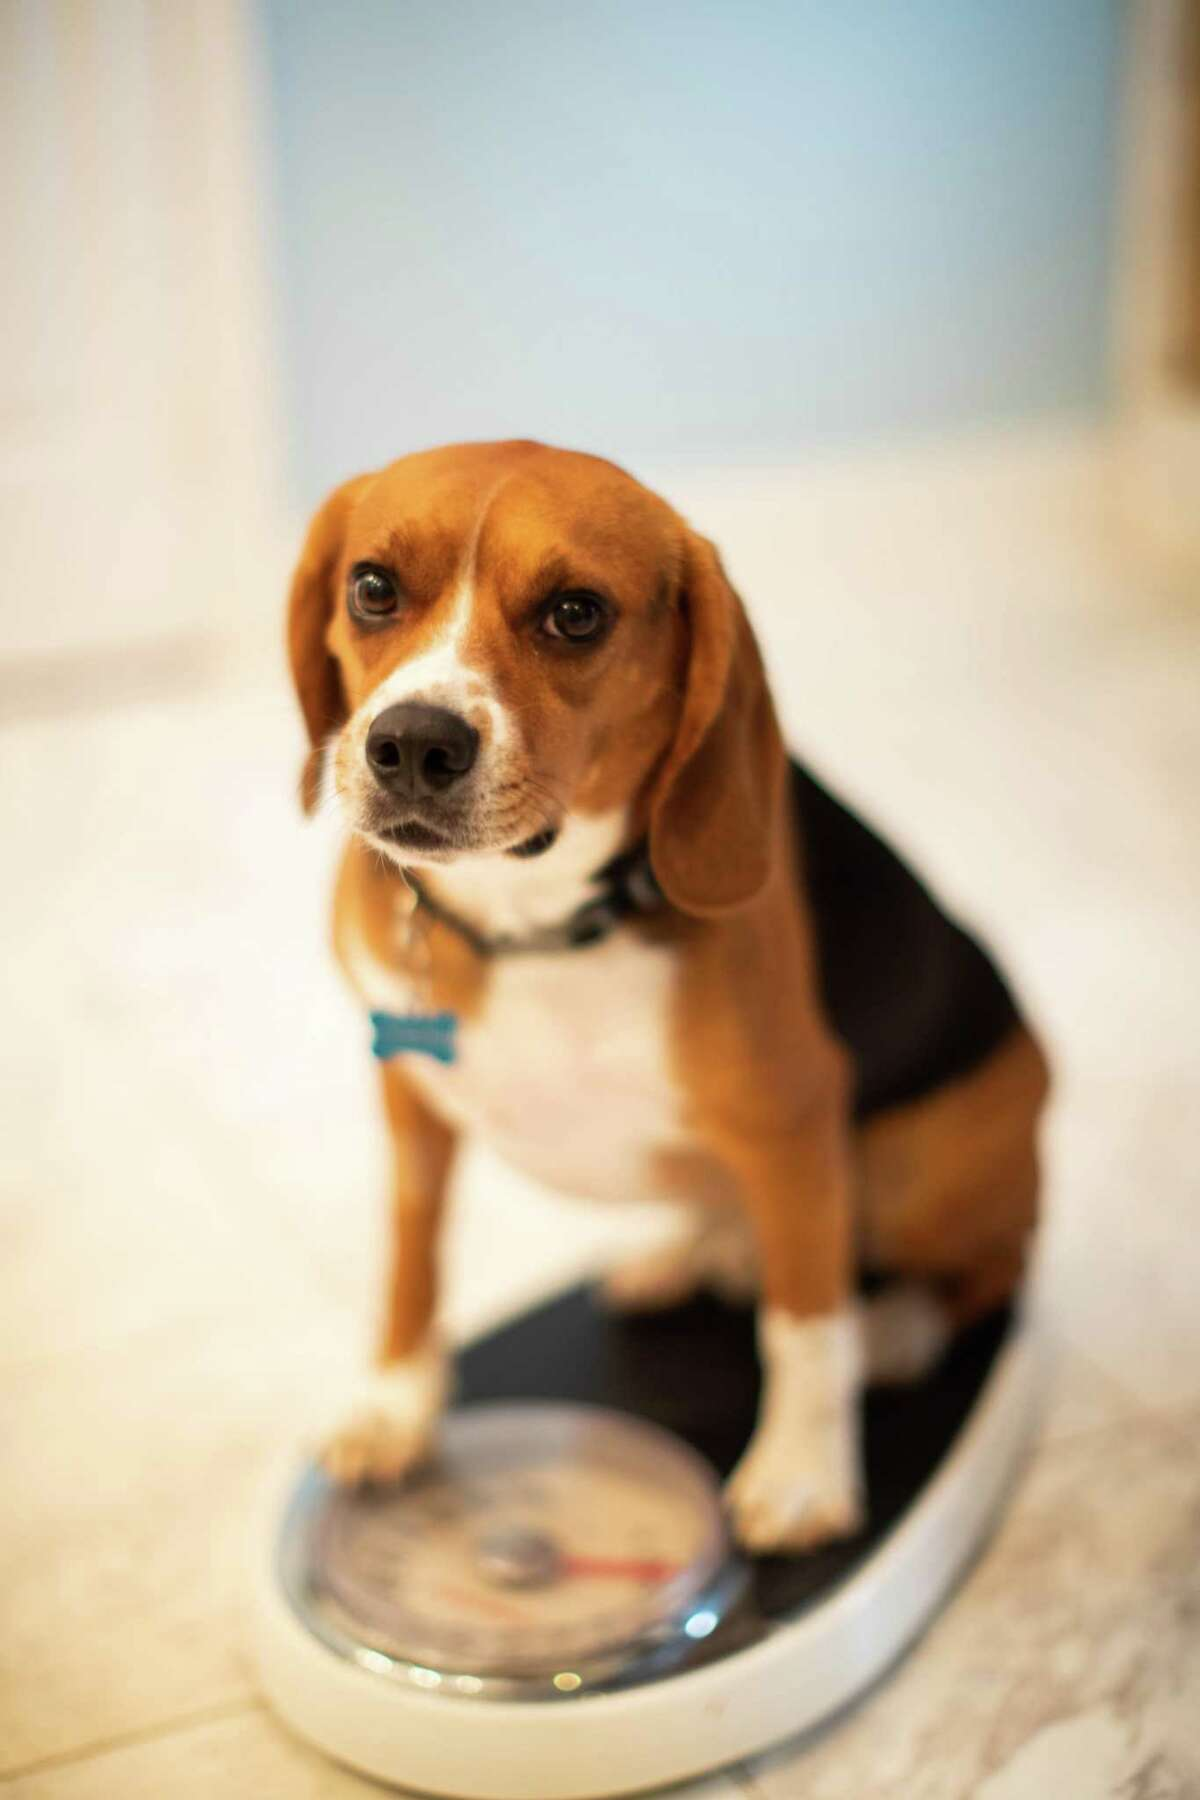 Is your dog fat? Brody the beagle weighs in.